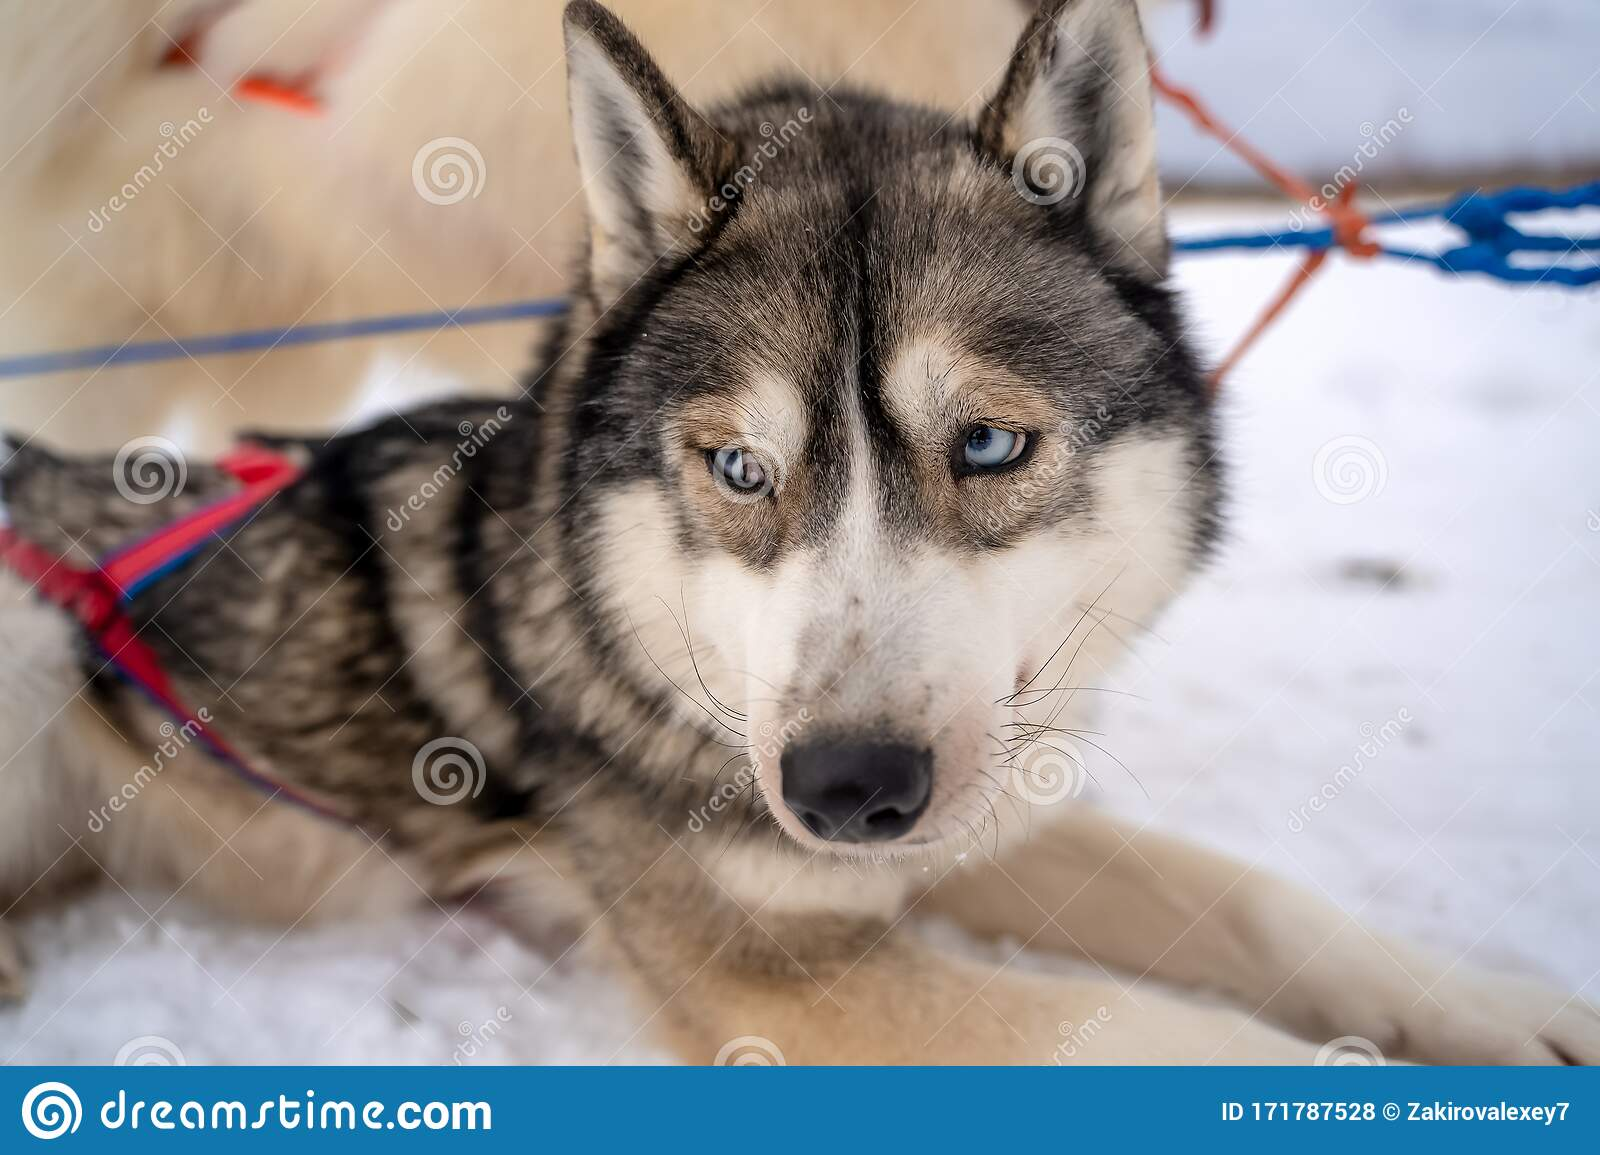 Husky Puppy Cute Adorable Baby Dog Face Waiting In The Dog House With Grass For Playing And Eating In The Animal Pet Field Stock Photo Image Of Group Finnish 171787528